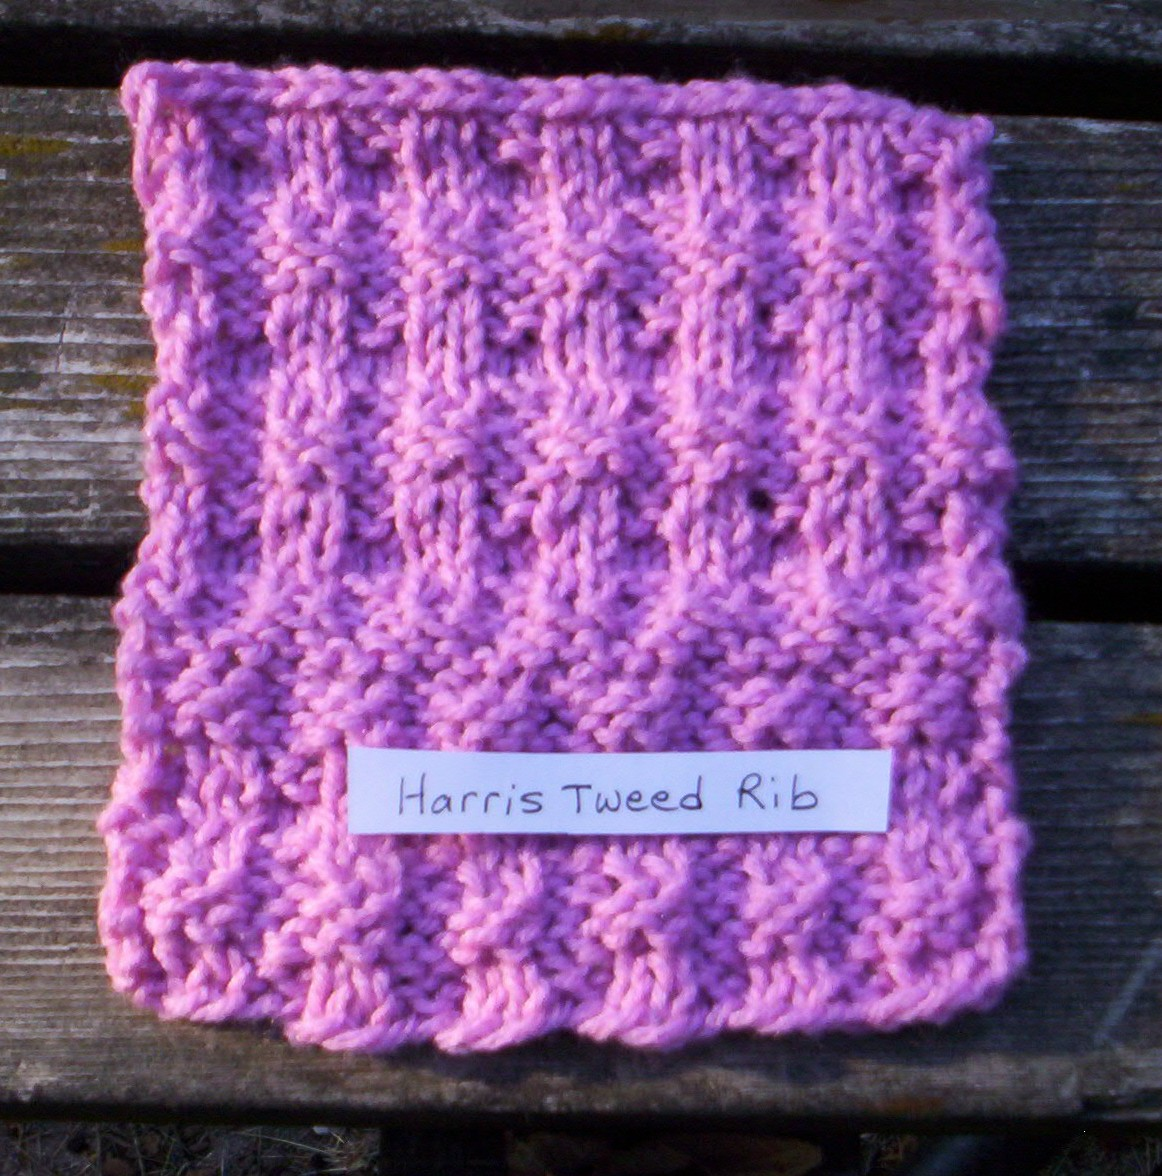 Knitted Square Patterns : 100_0785.jpg